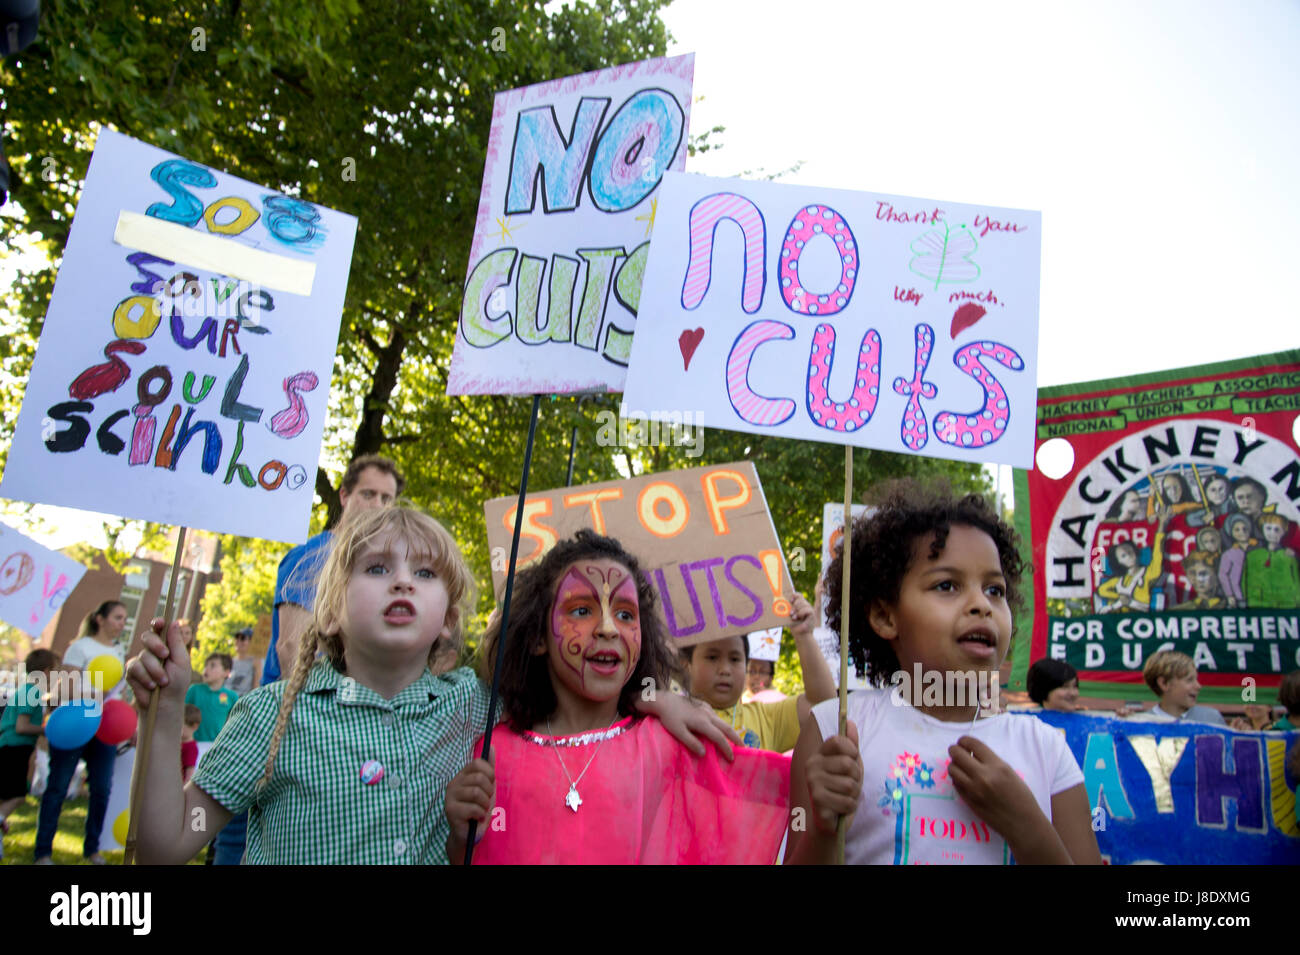 Protest against government plans to cut over 600 teachers in Hackney. Three girls hold placards saying 'No cuts' - Stock Image